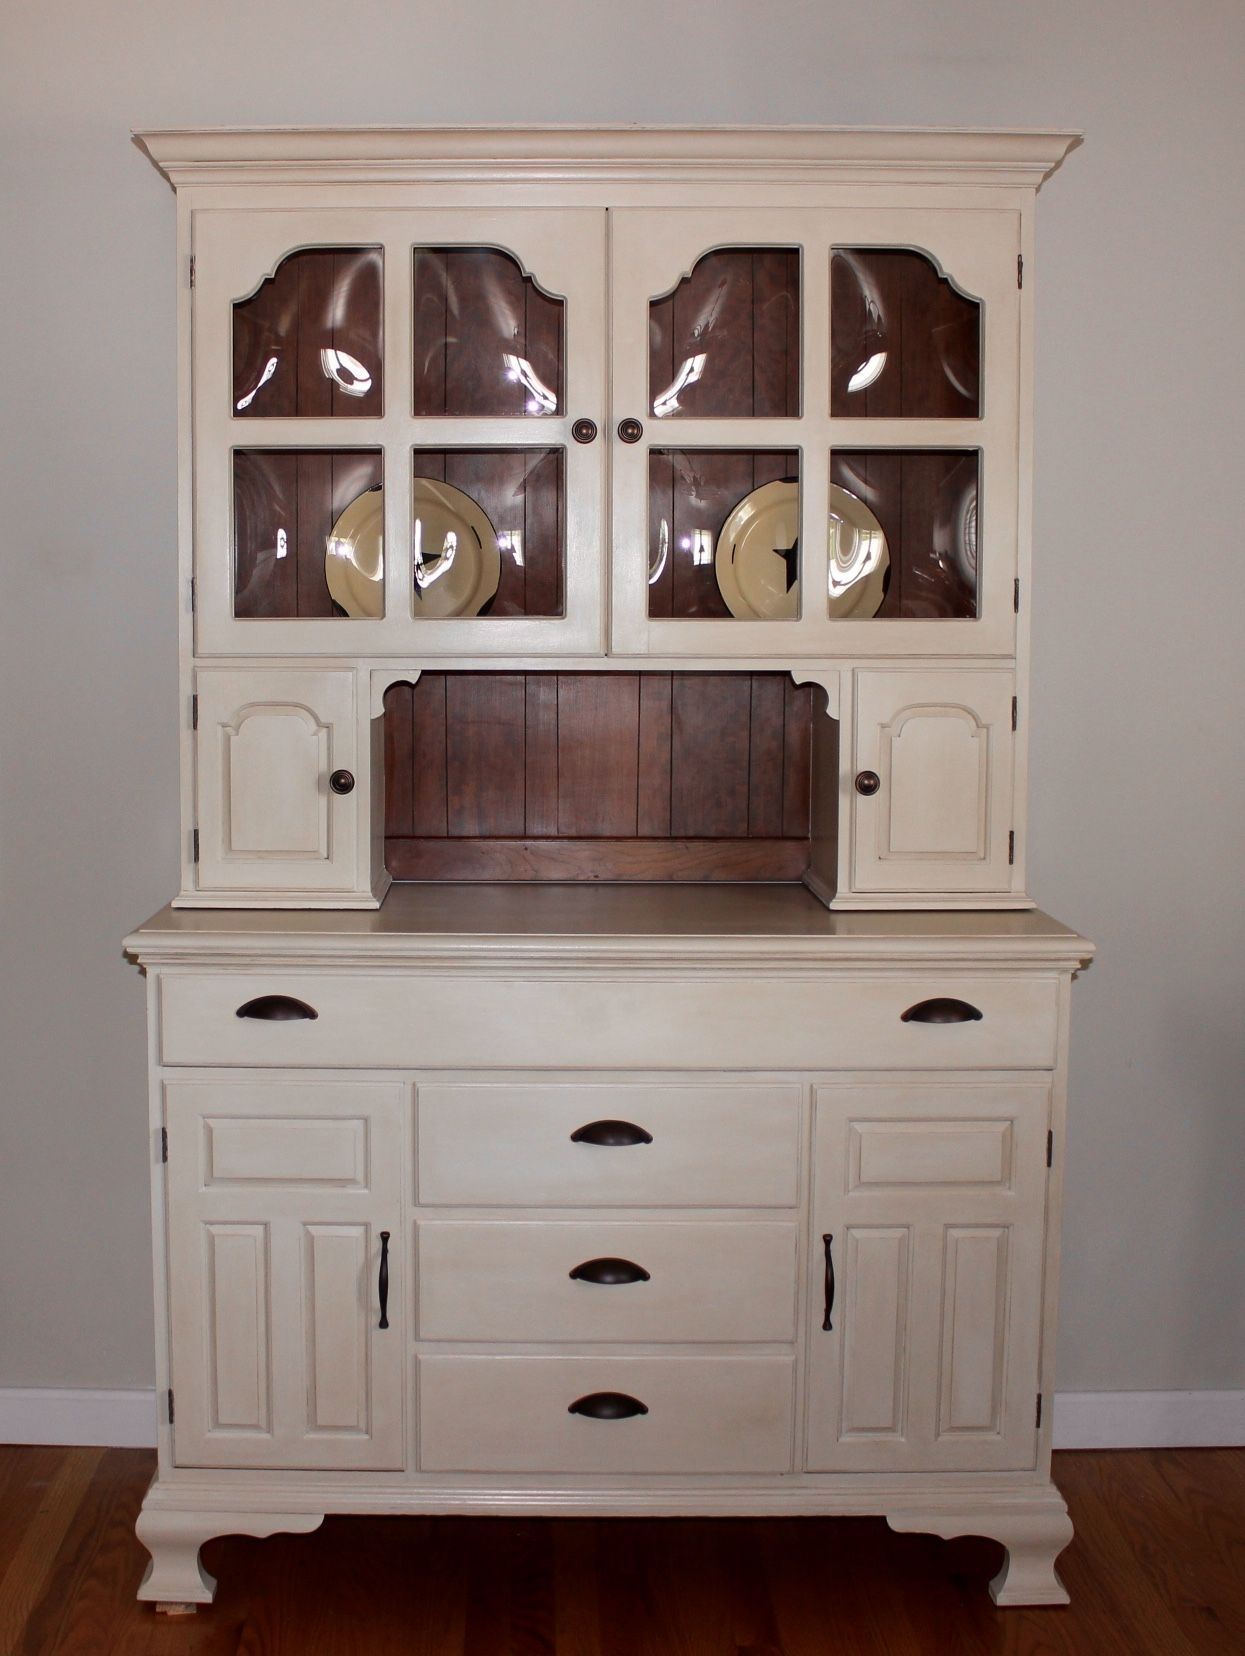 Pennsylvania House Hutch Given A New Look (View 14 of 30)